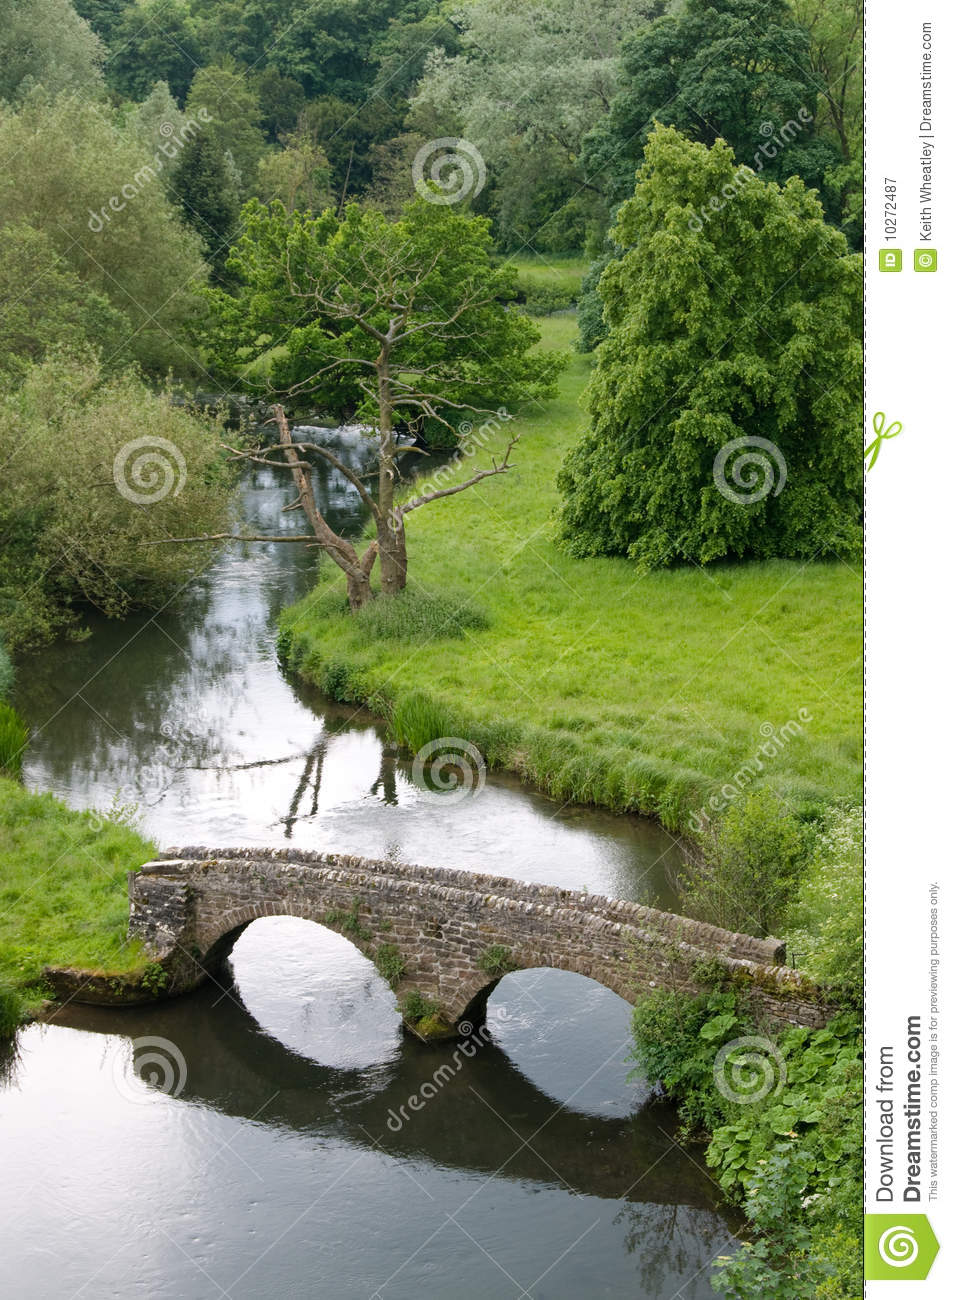 View of river and stone arched bridge